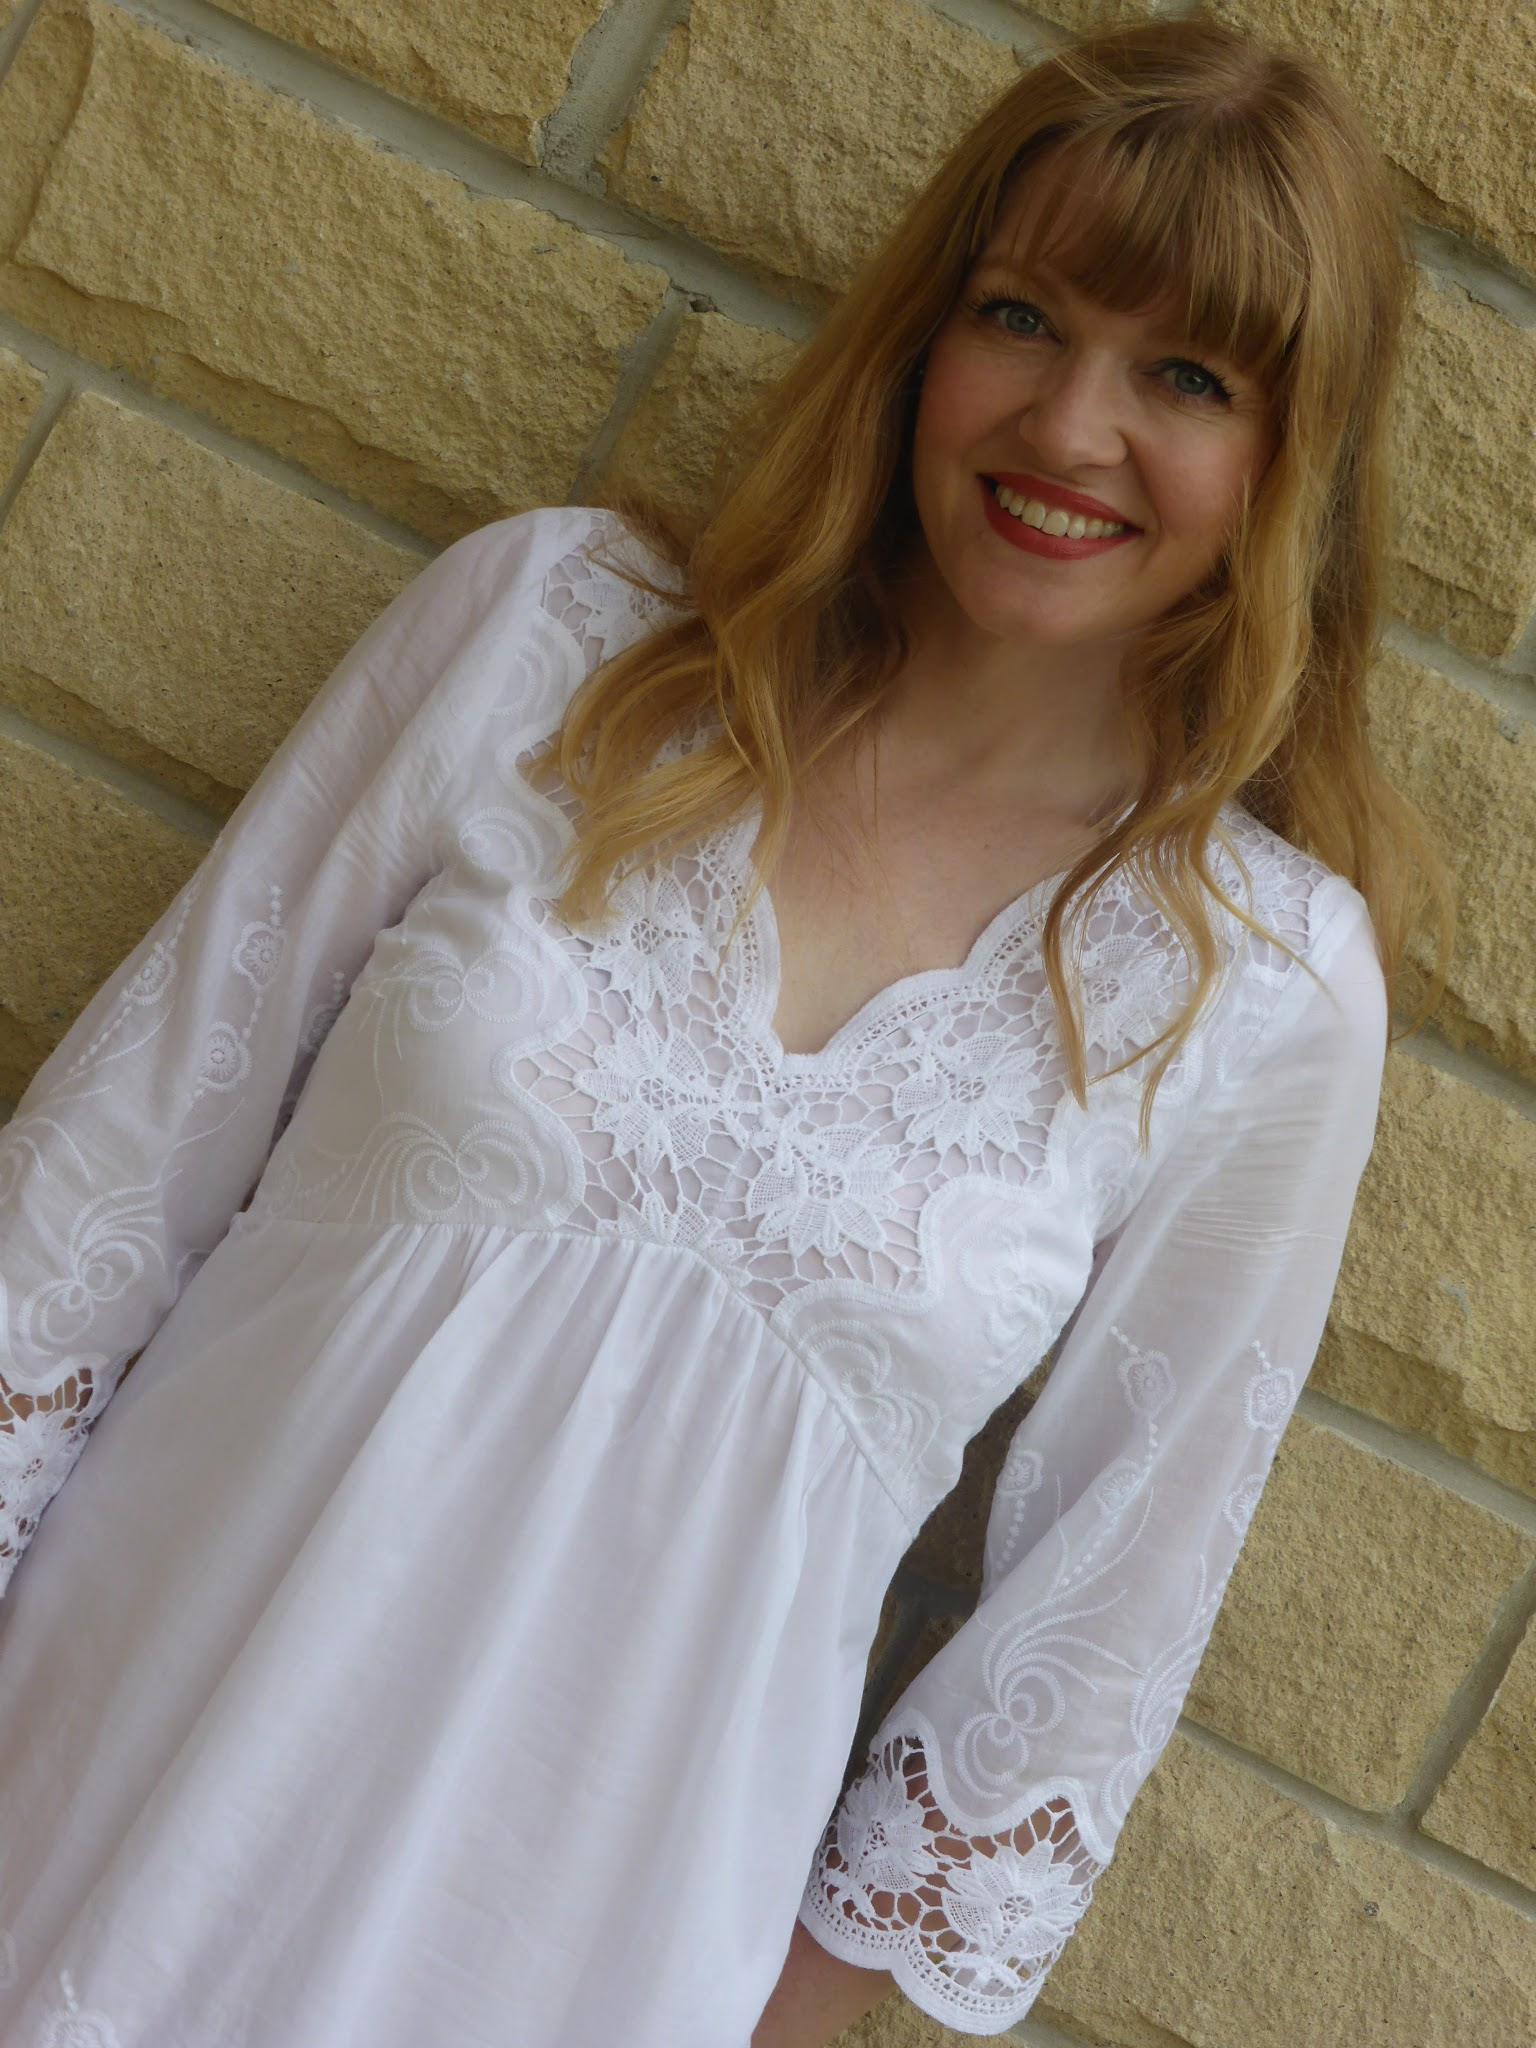 Over 40s blogger What Lizzy Loves wears white embroidered lace summer dress with high-heeled strappy sandals